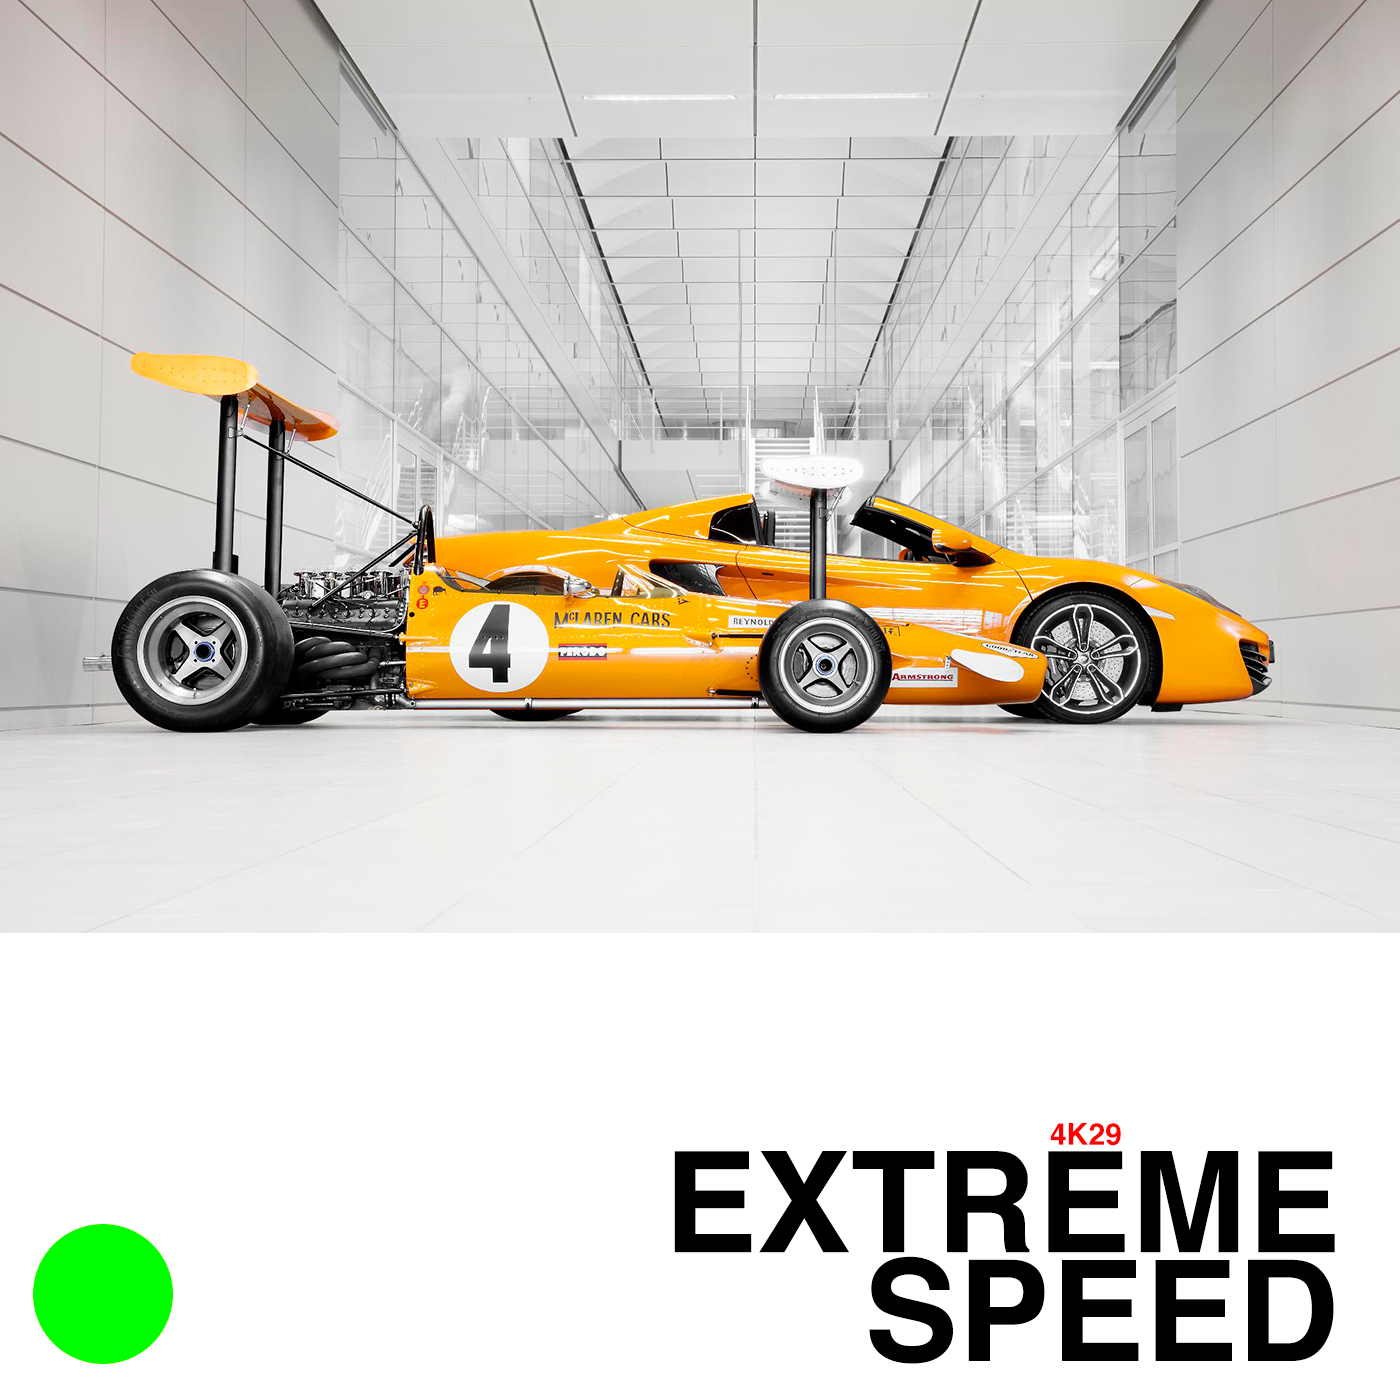 EXTREME SPEED 4K29 MOBILE640